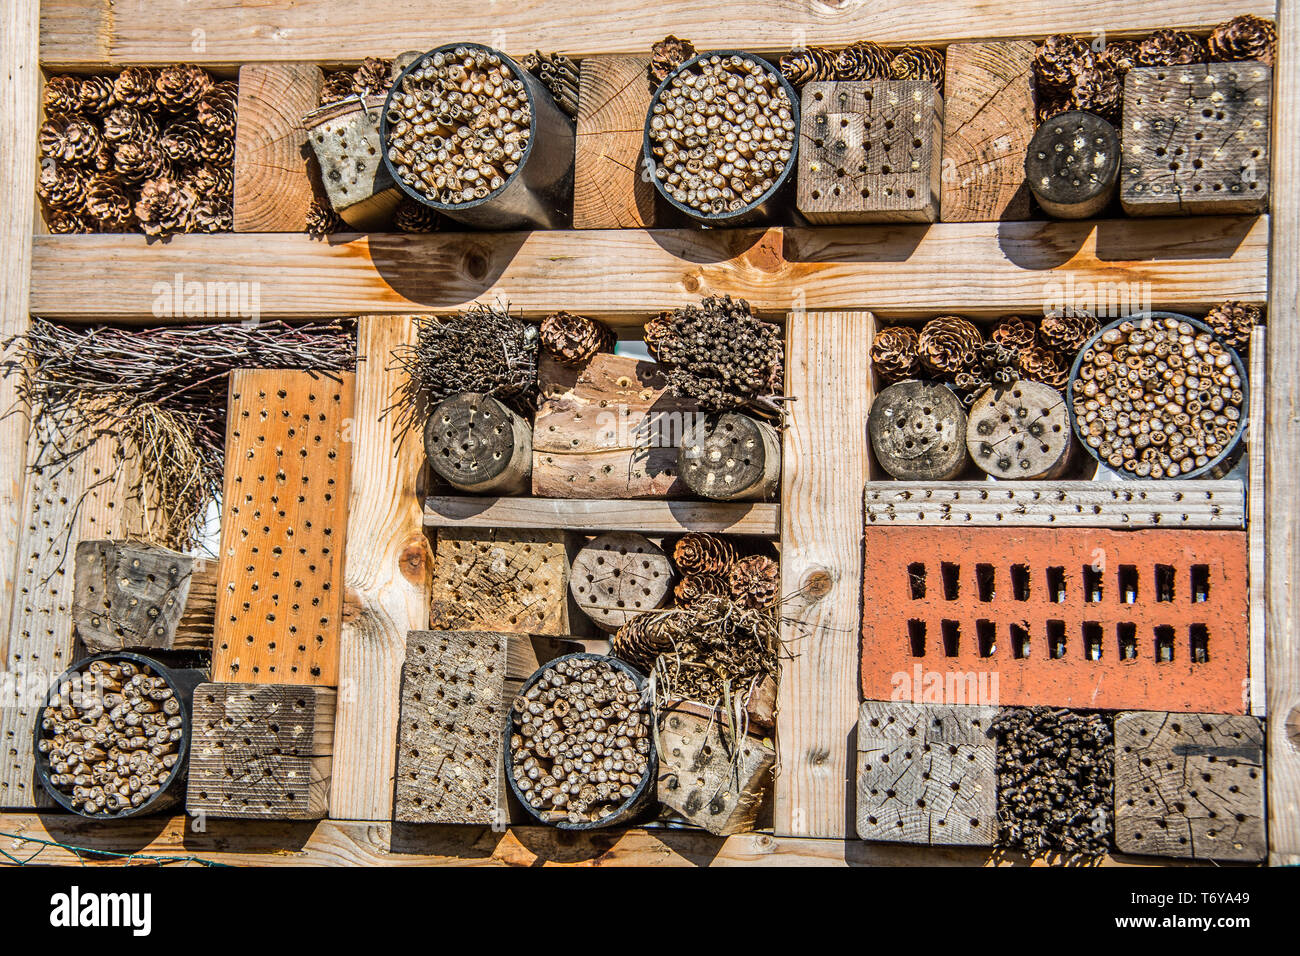 Insect hotel for brood care - Stock Image